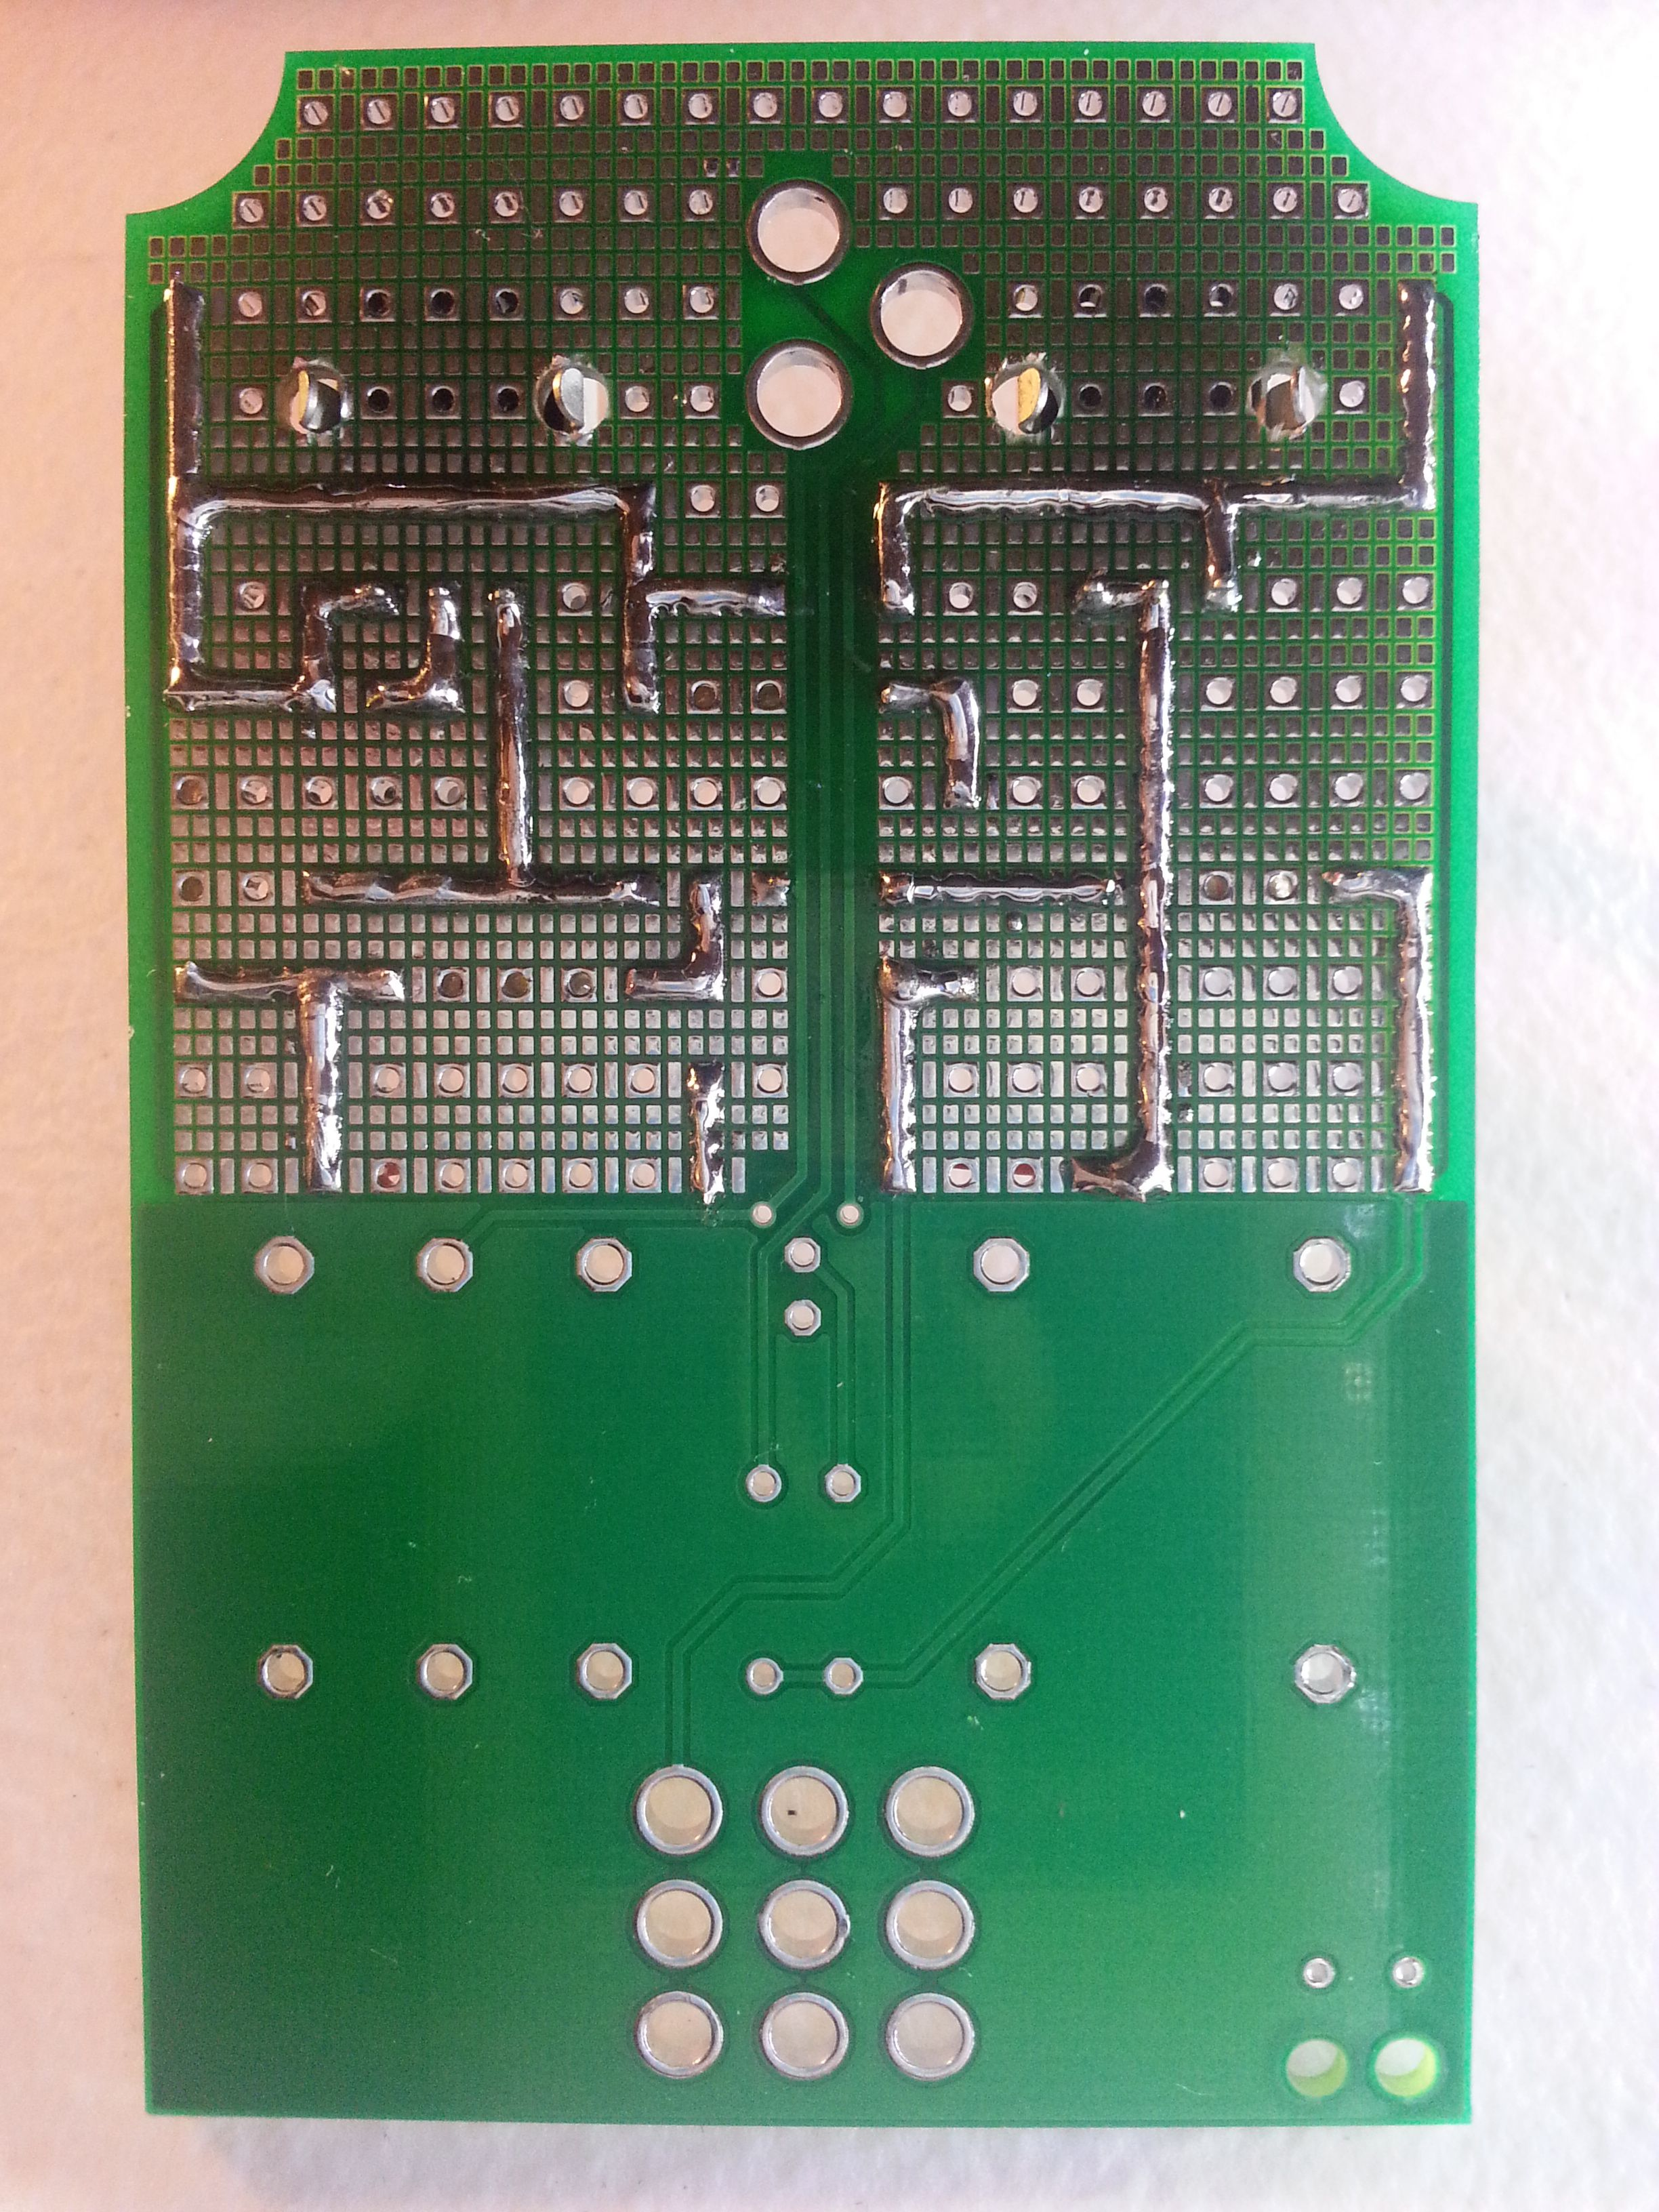 Diy Stompbox Boost Demo Project Synthrotek This Was The Original Optical Theremin Circuit 12 Traces Solder Side